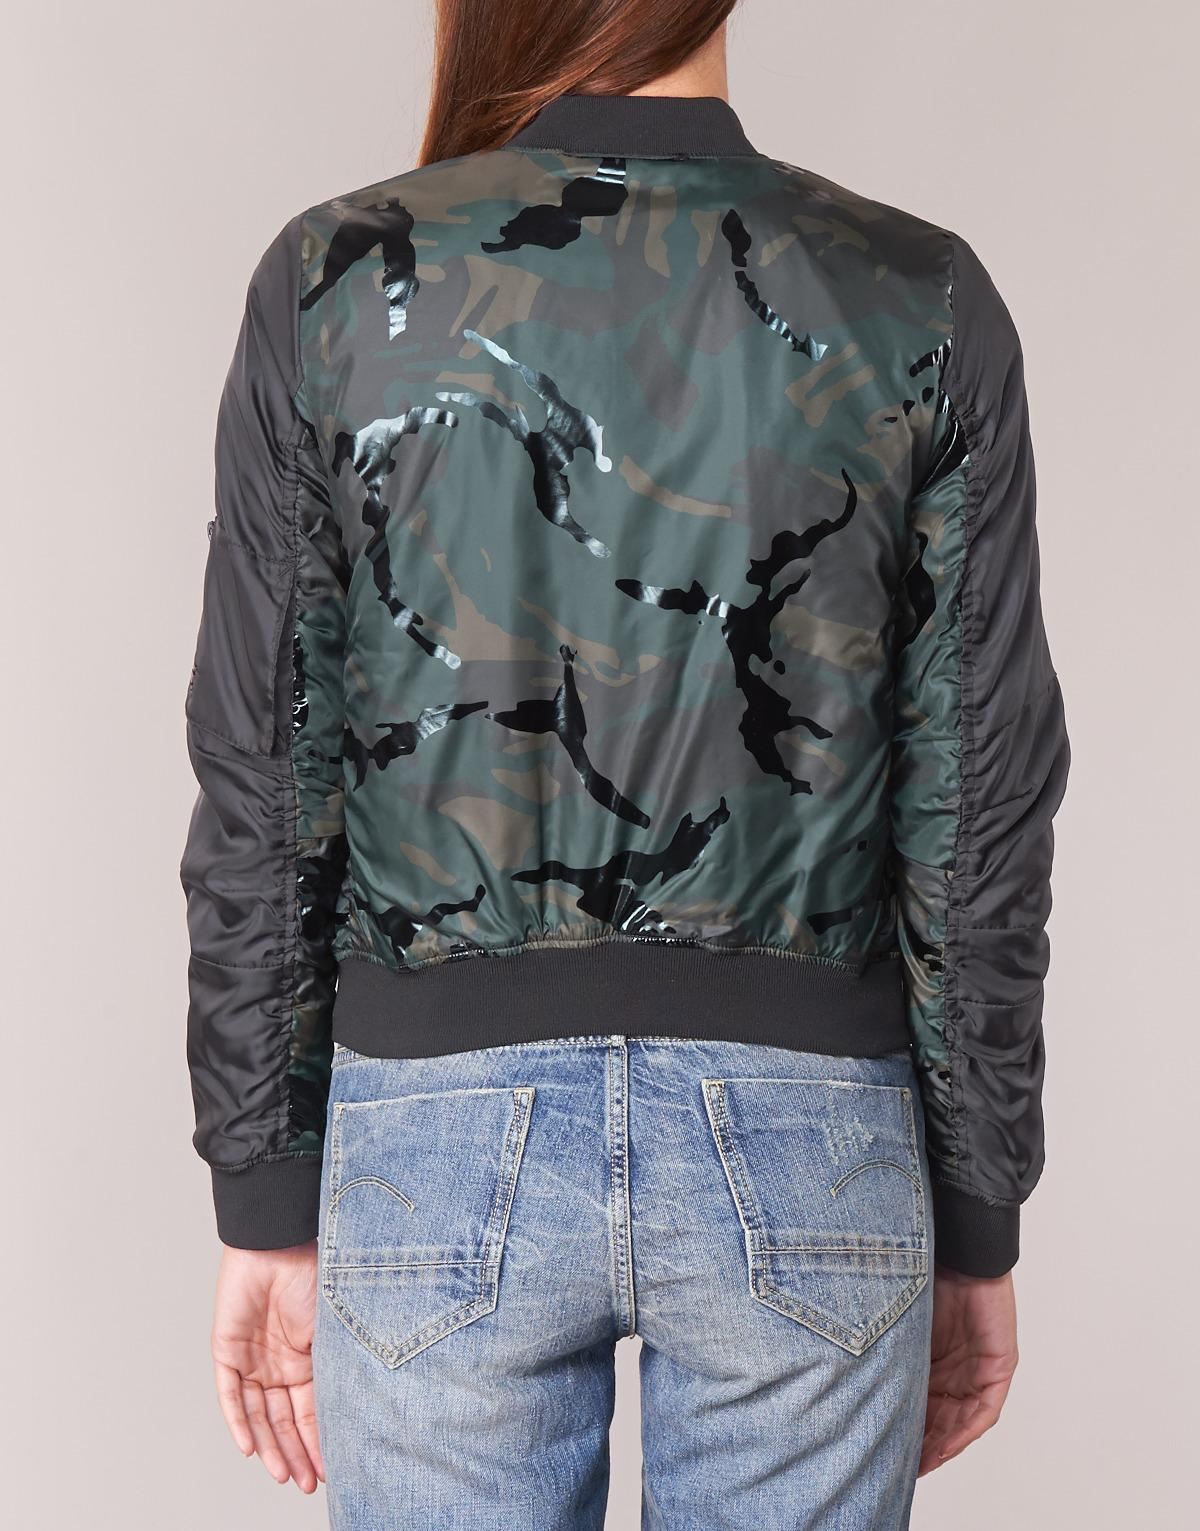 G-Star RAW Rackam Hc Bdc Cropped Bomber Jacket in Green - Lyst